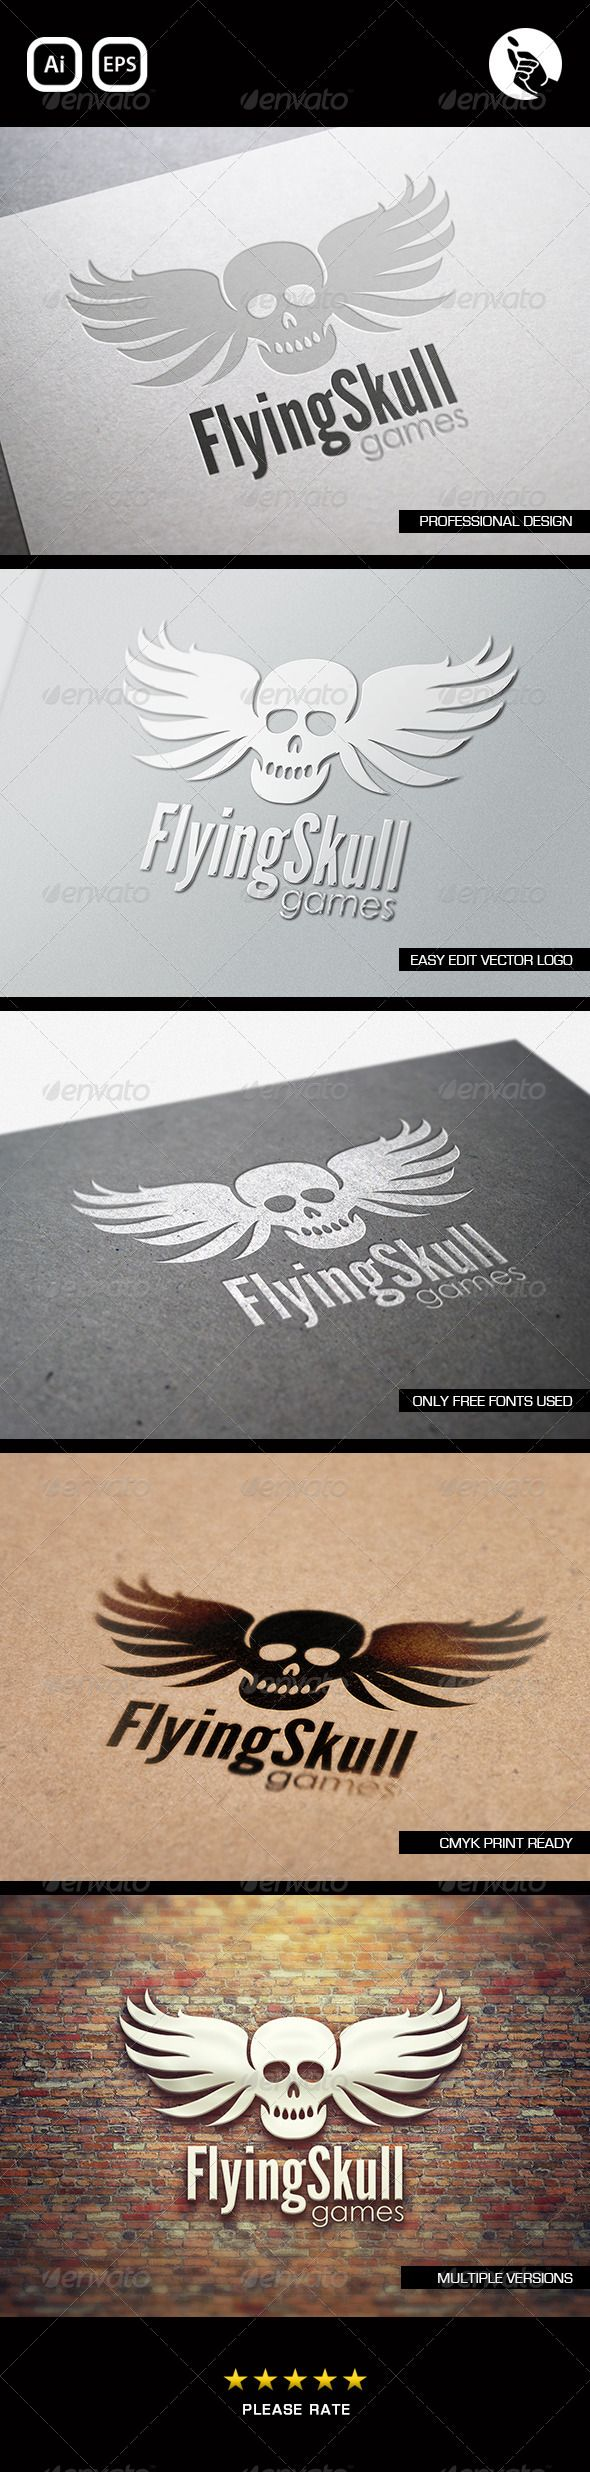 Flying Skull Games Logo by FlipsideDesign FLYING SKULL GAMES LOGO BY FLIPSIDE Professionally designed unique logo Fully editable with eps & ai formats CMYK print ready f